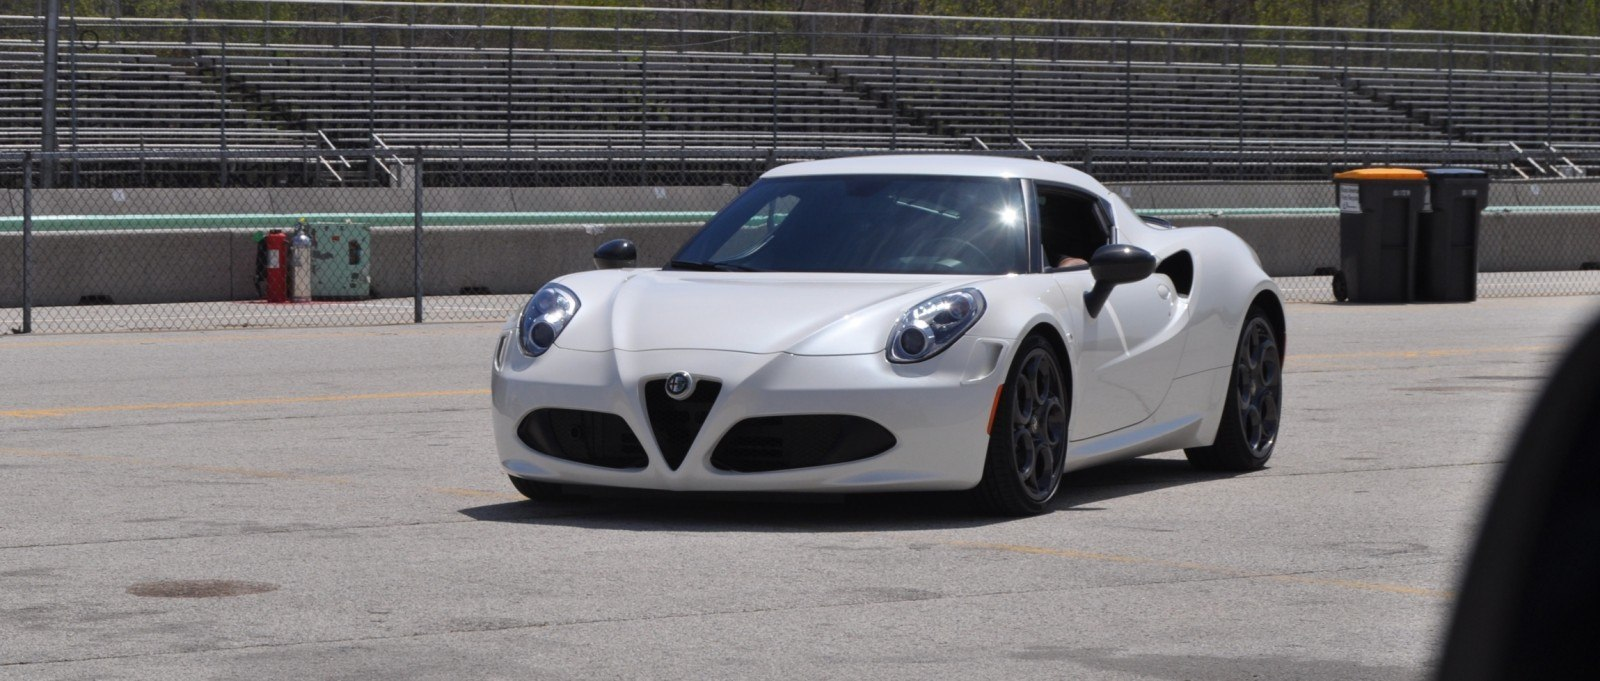 Gorgeous 2015 Alfa-Romeo 4C Revealed in Full USA Trim + New Headlights! 1